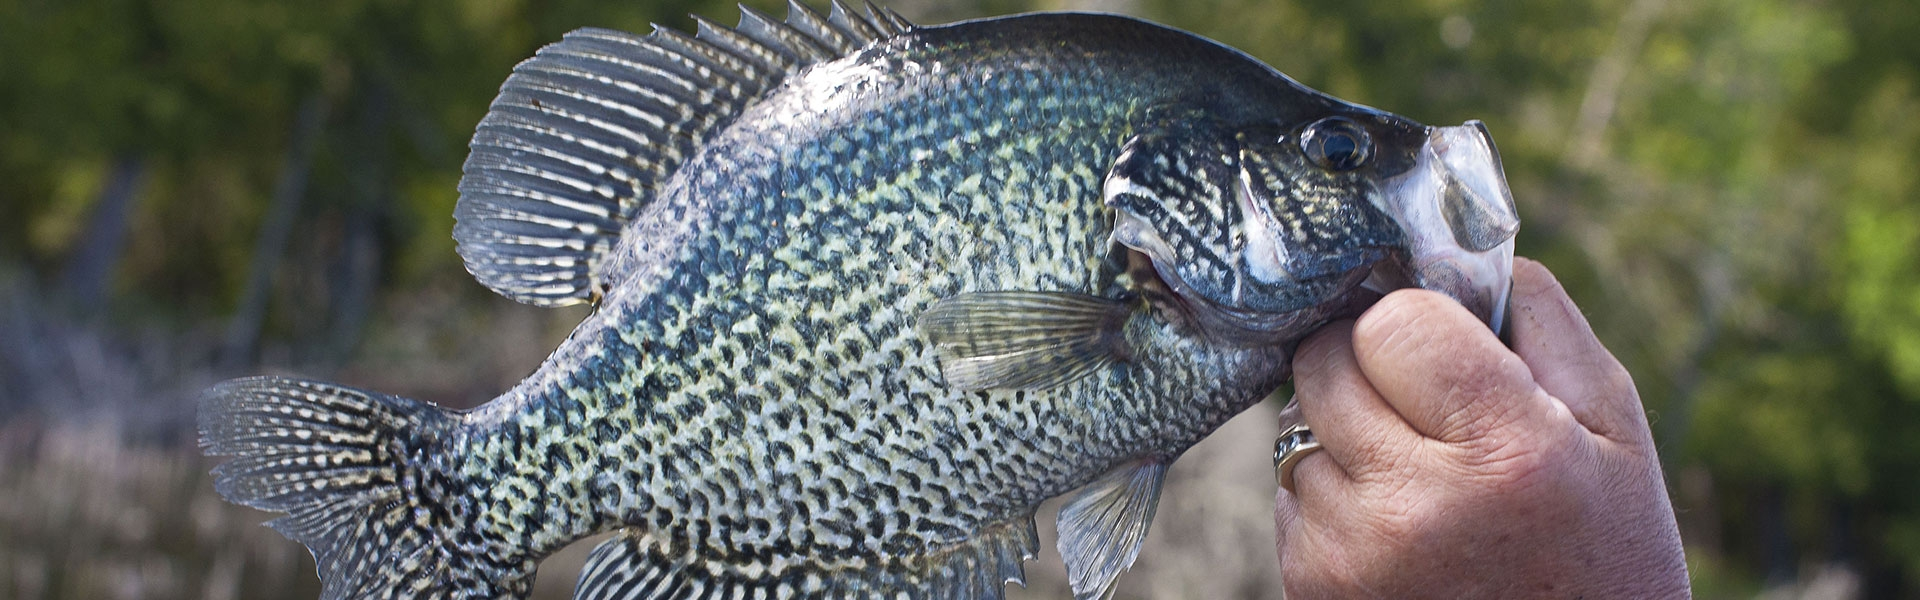 Weiss Lake Crappie Fishing Report